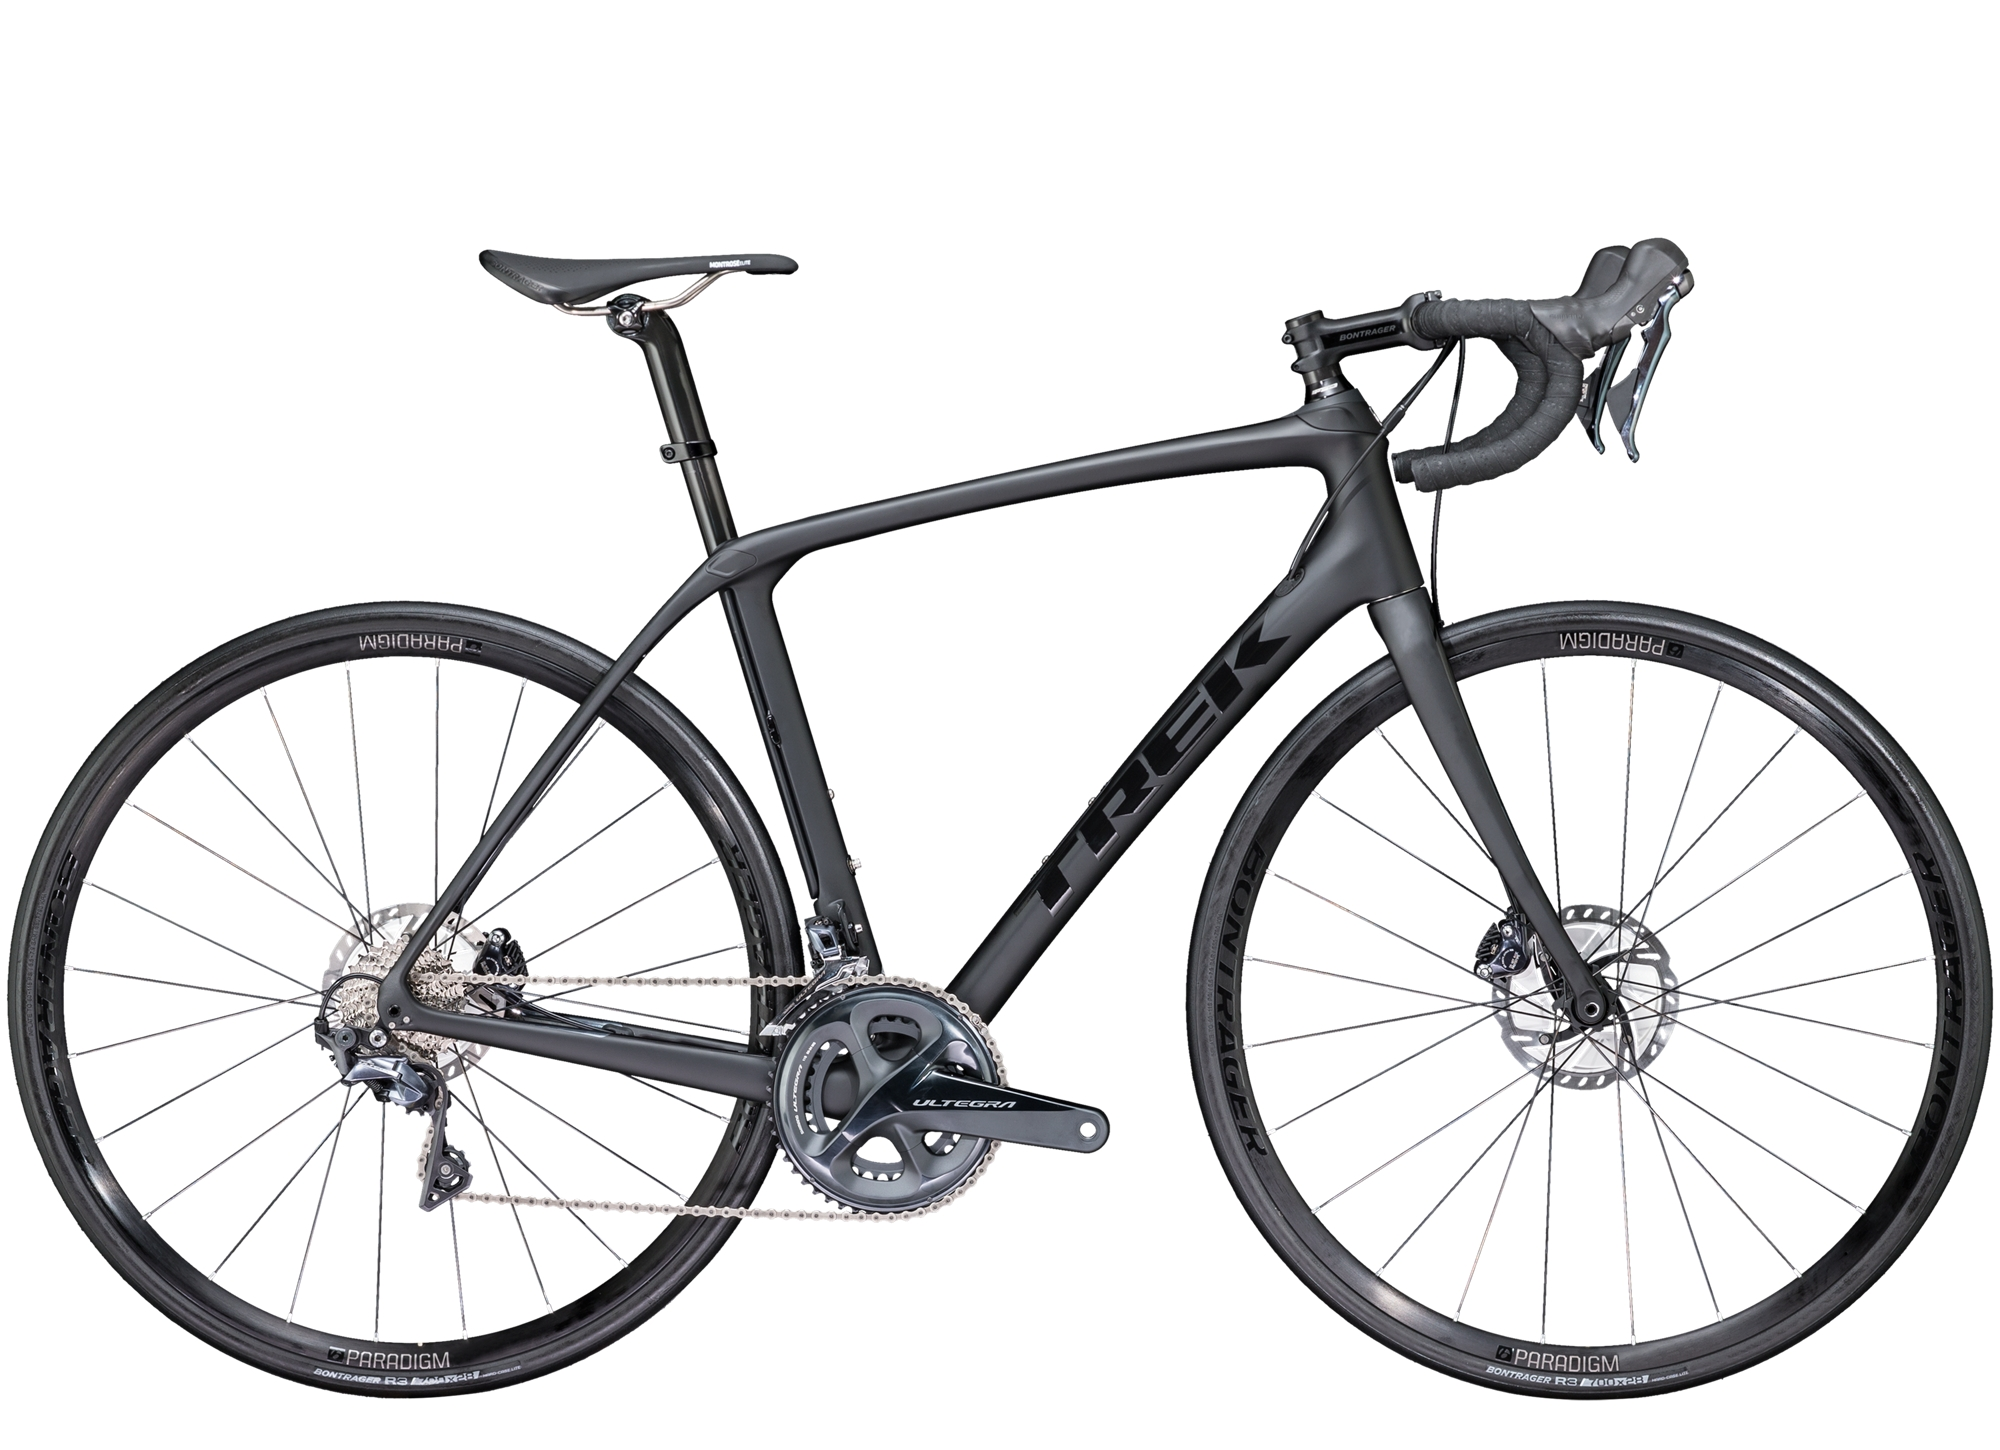 https://trek.scene7.com/is/image/TrekBicycleProducts/1477300_2018_A_1_Domane_SLR_6_Disc?wid=2000